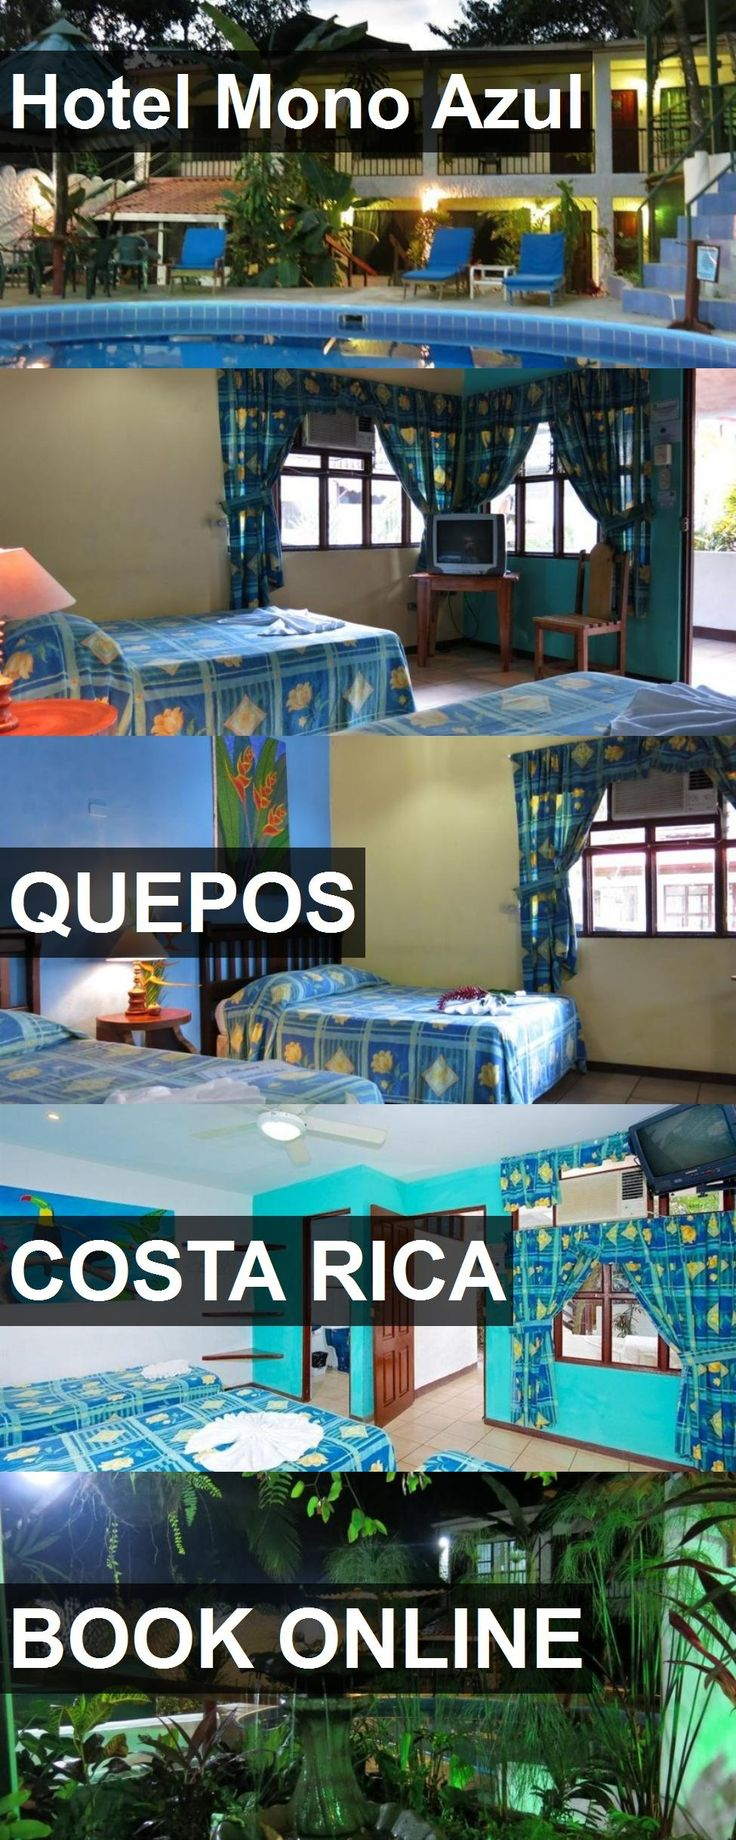 Hotel Mono Azul in Quepos, Costa Rica. For more information, photos, reviews and best prices please follow the link. #CostaRica #Quepos #travel #vacation #hotel